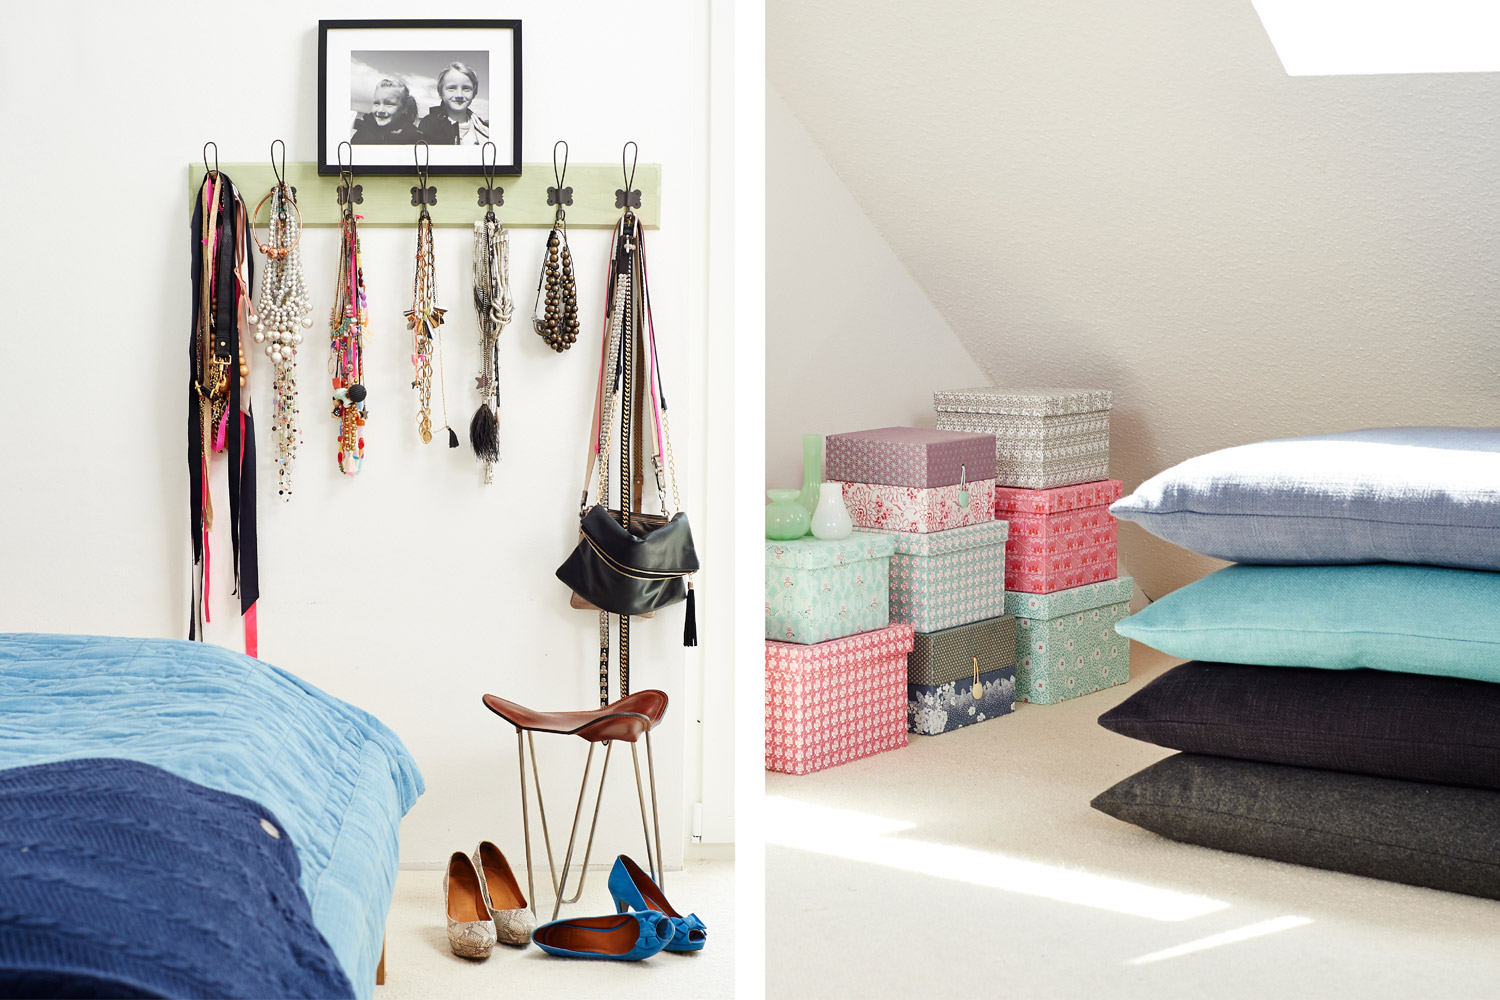 ASTRID M OBERT PHOTOGRAPHY PRESENTS - Scandi Style by Sisse McNeill